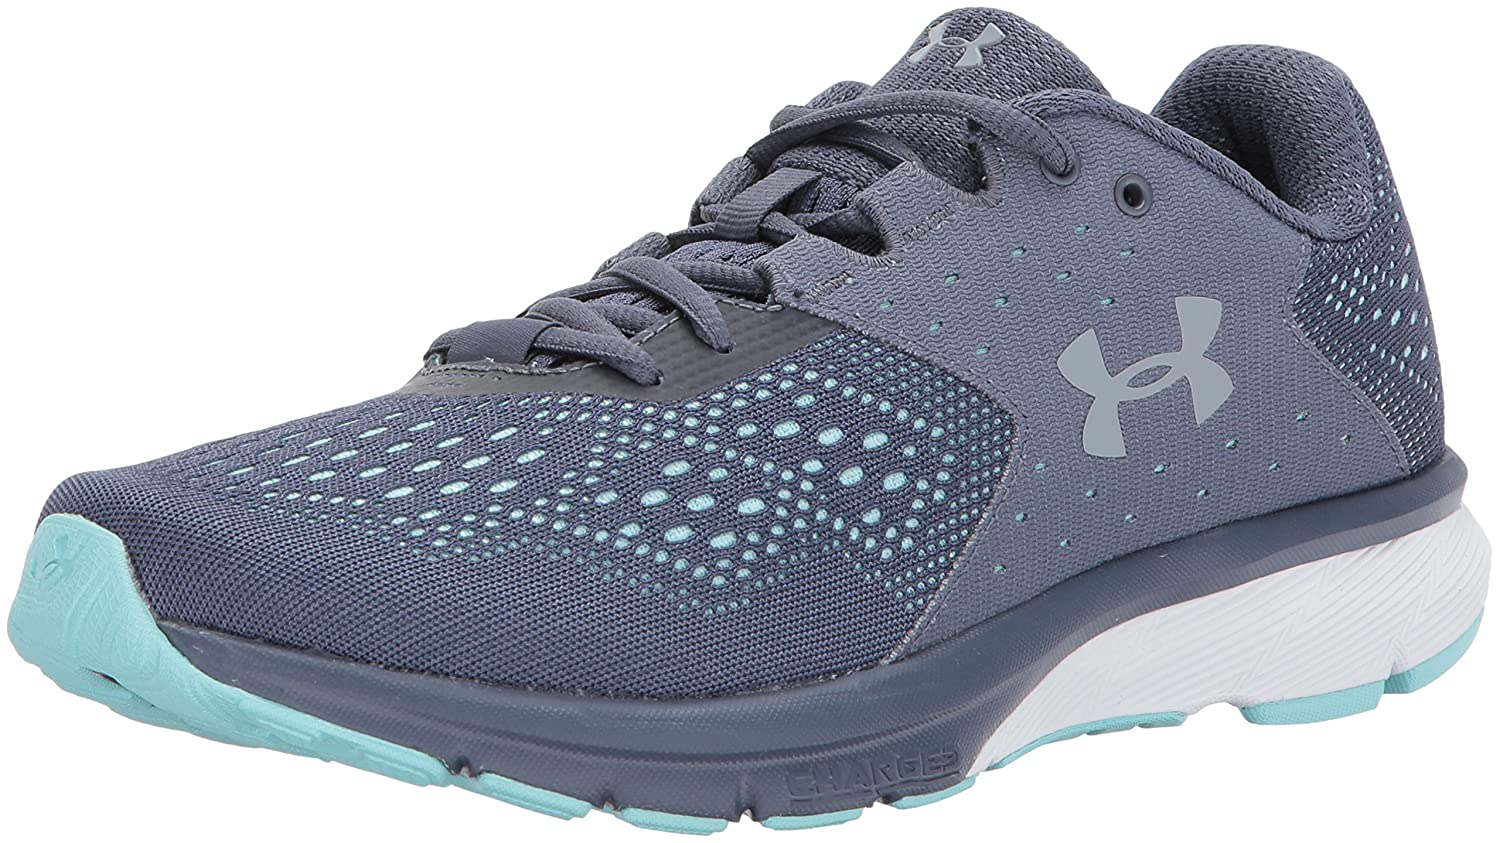 Under Armour Women's Charged Rebel Running Shoe B01MRWRBKX 9.5 M US|Apollo Gray (100)/Blue Infinity